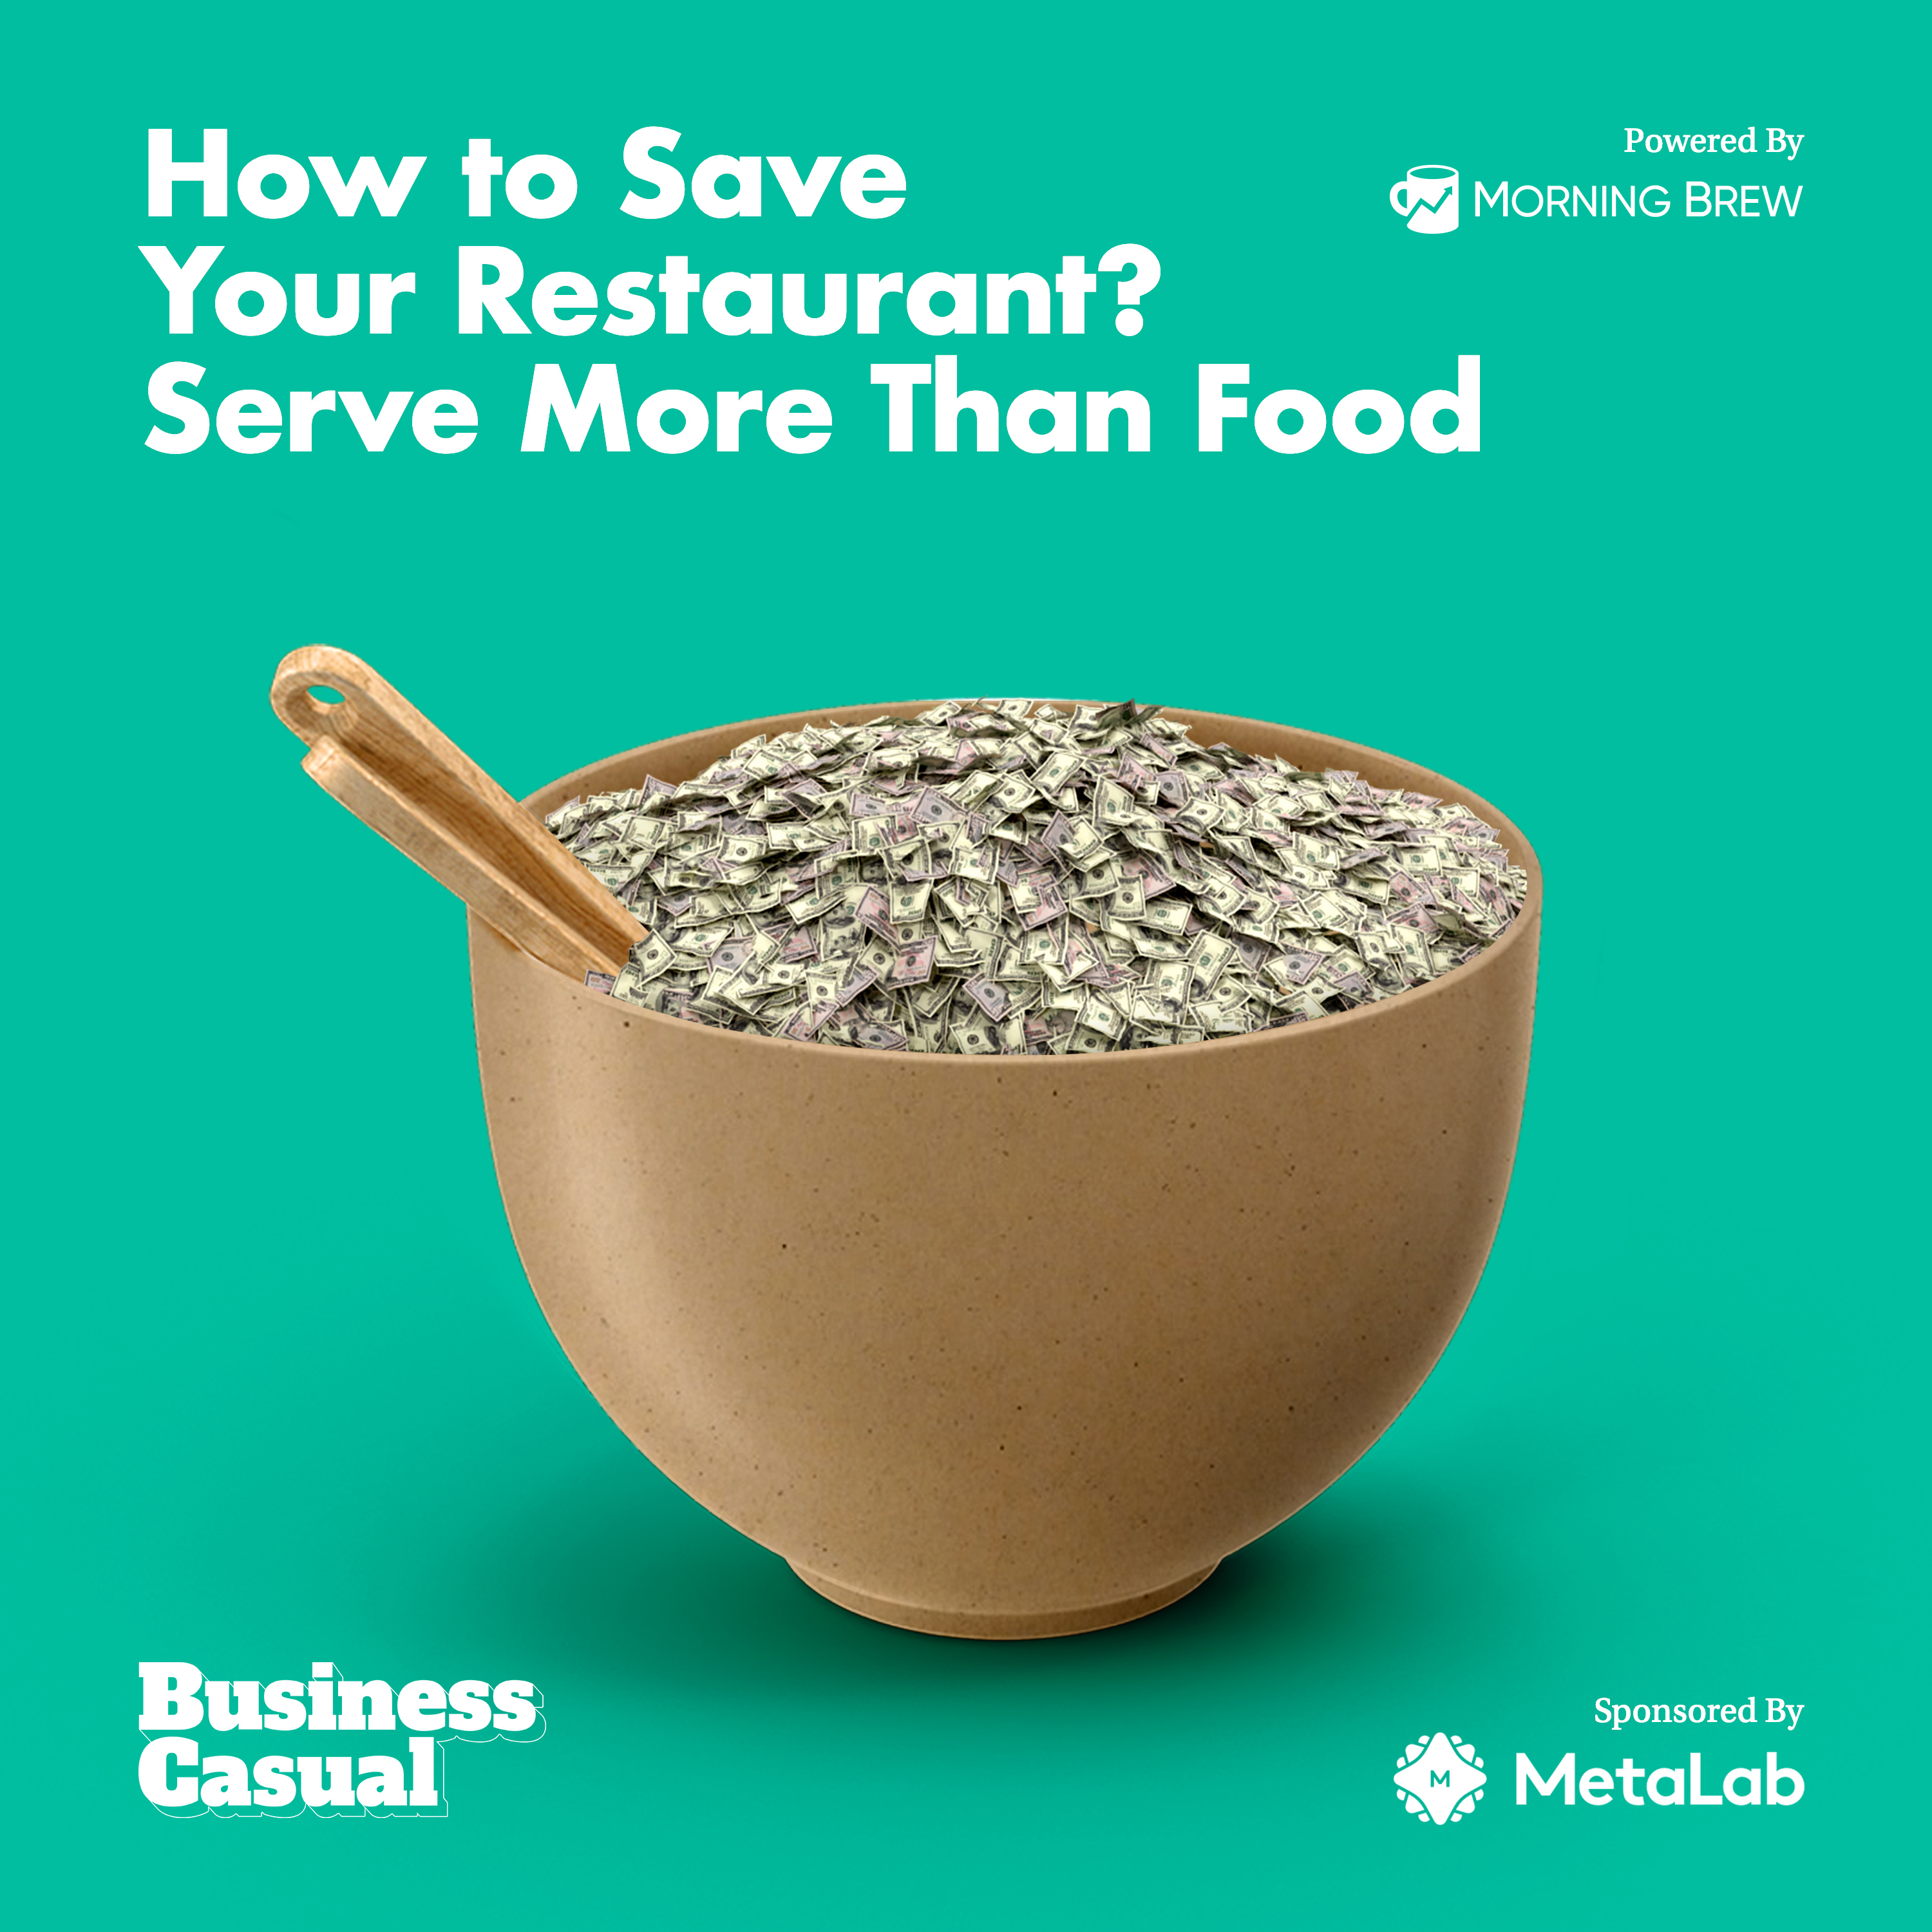 How to Save Your Restaurant? Serve More Than Food